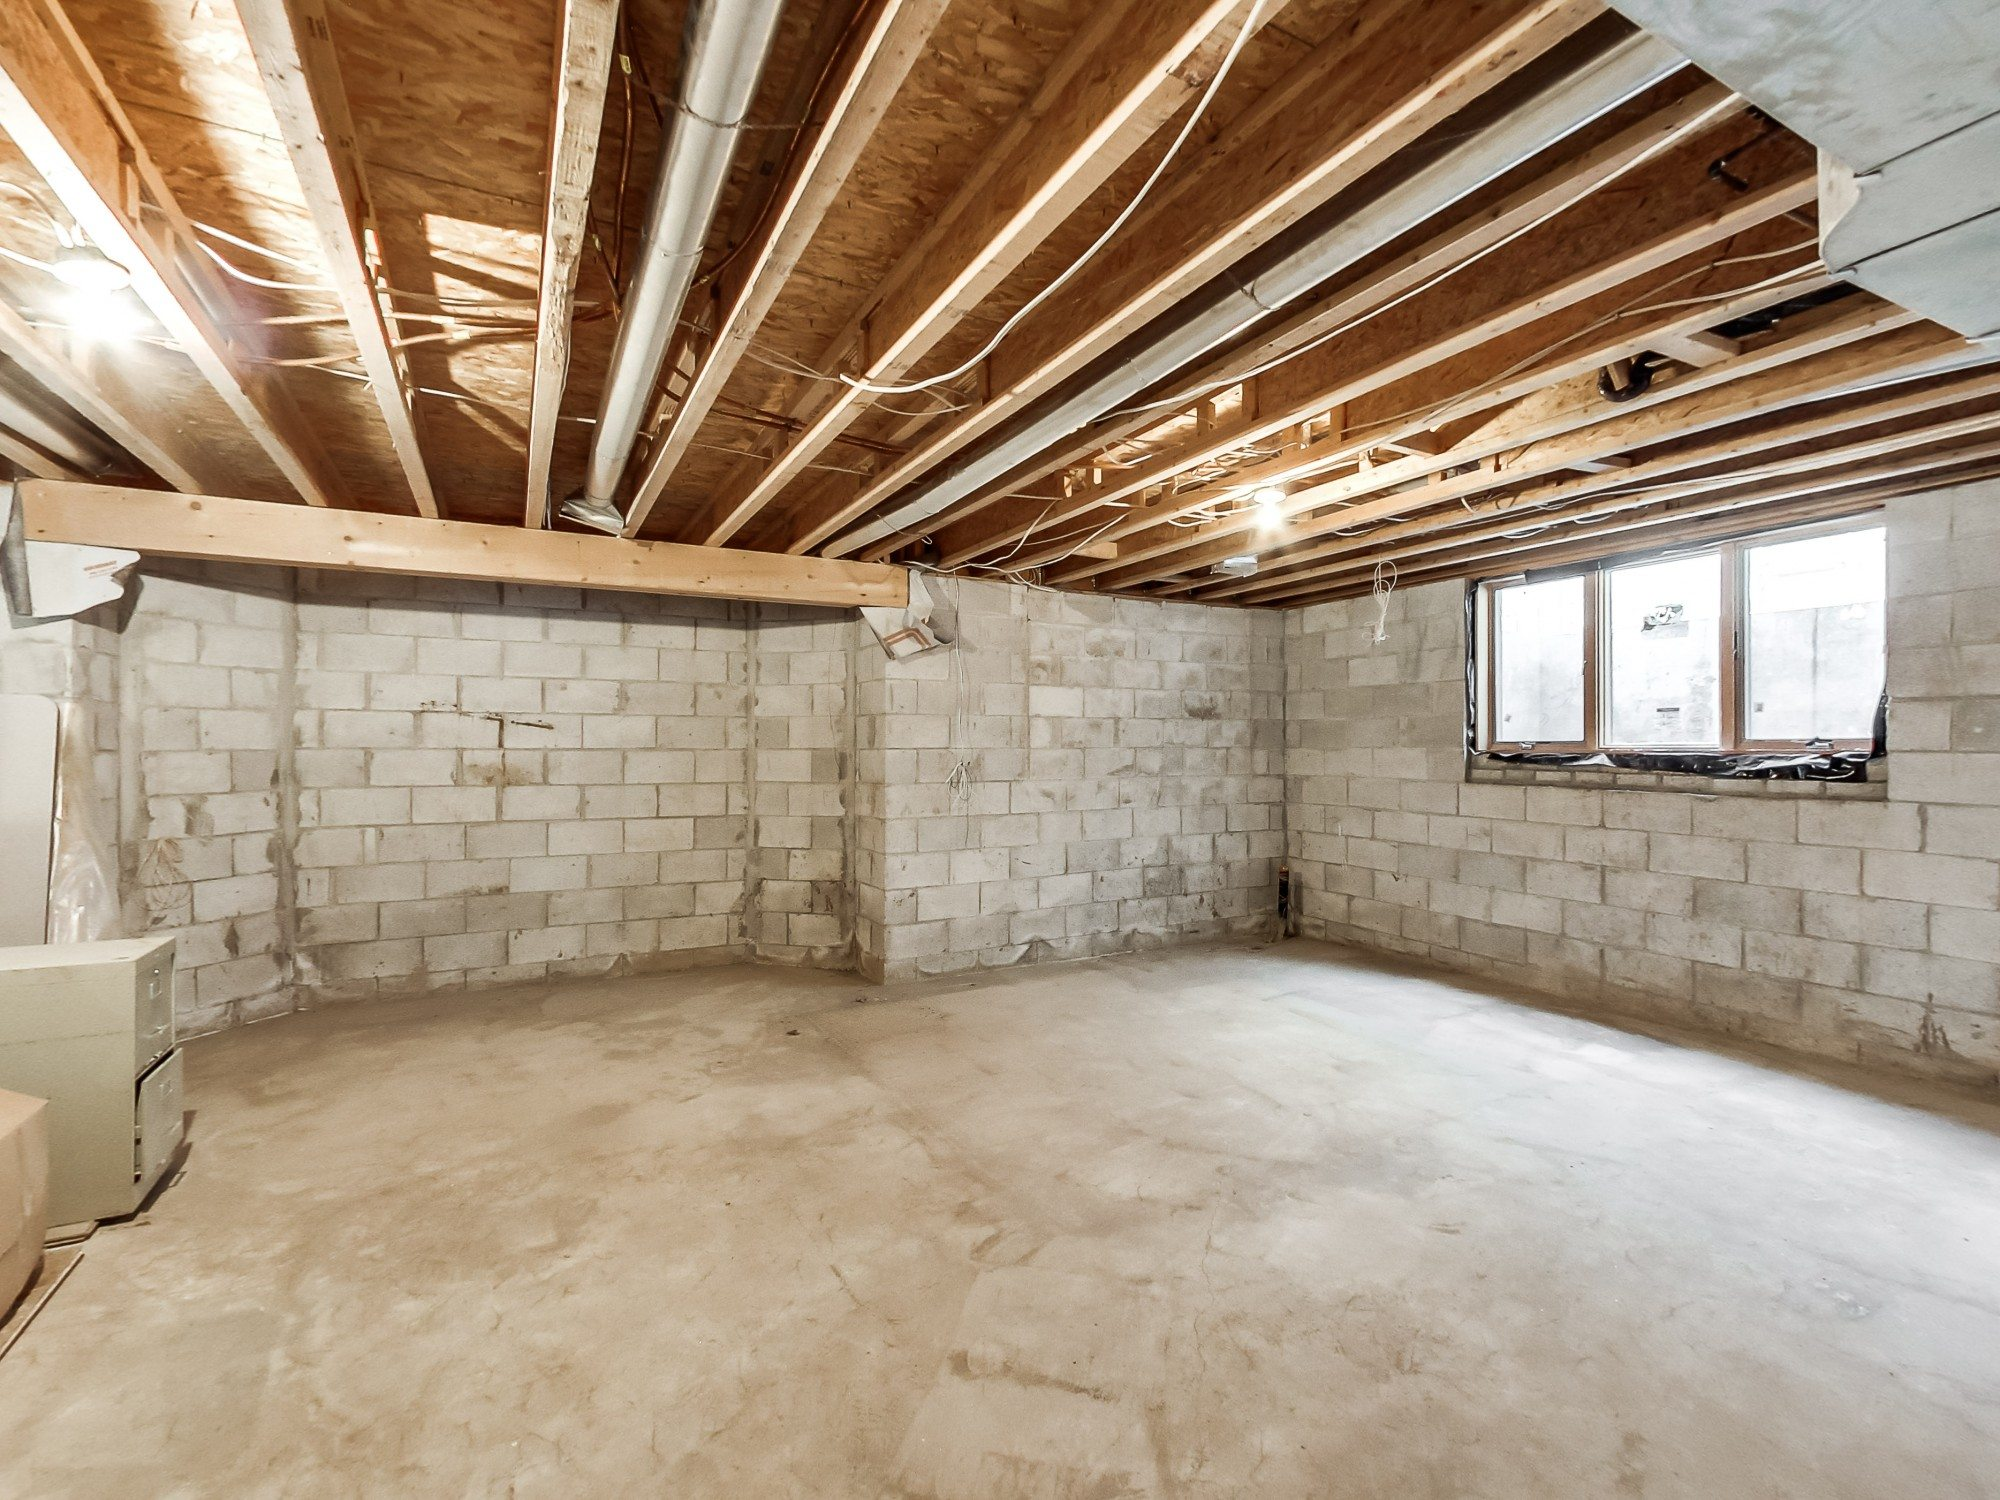 toronto-house-for-sale-129-imperial-street-14